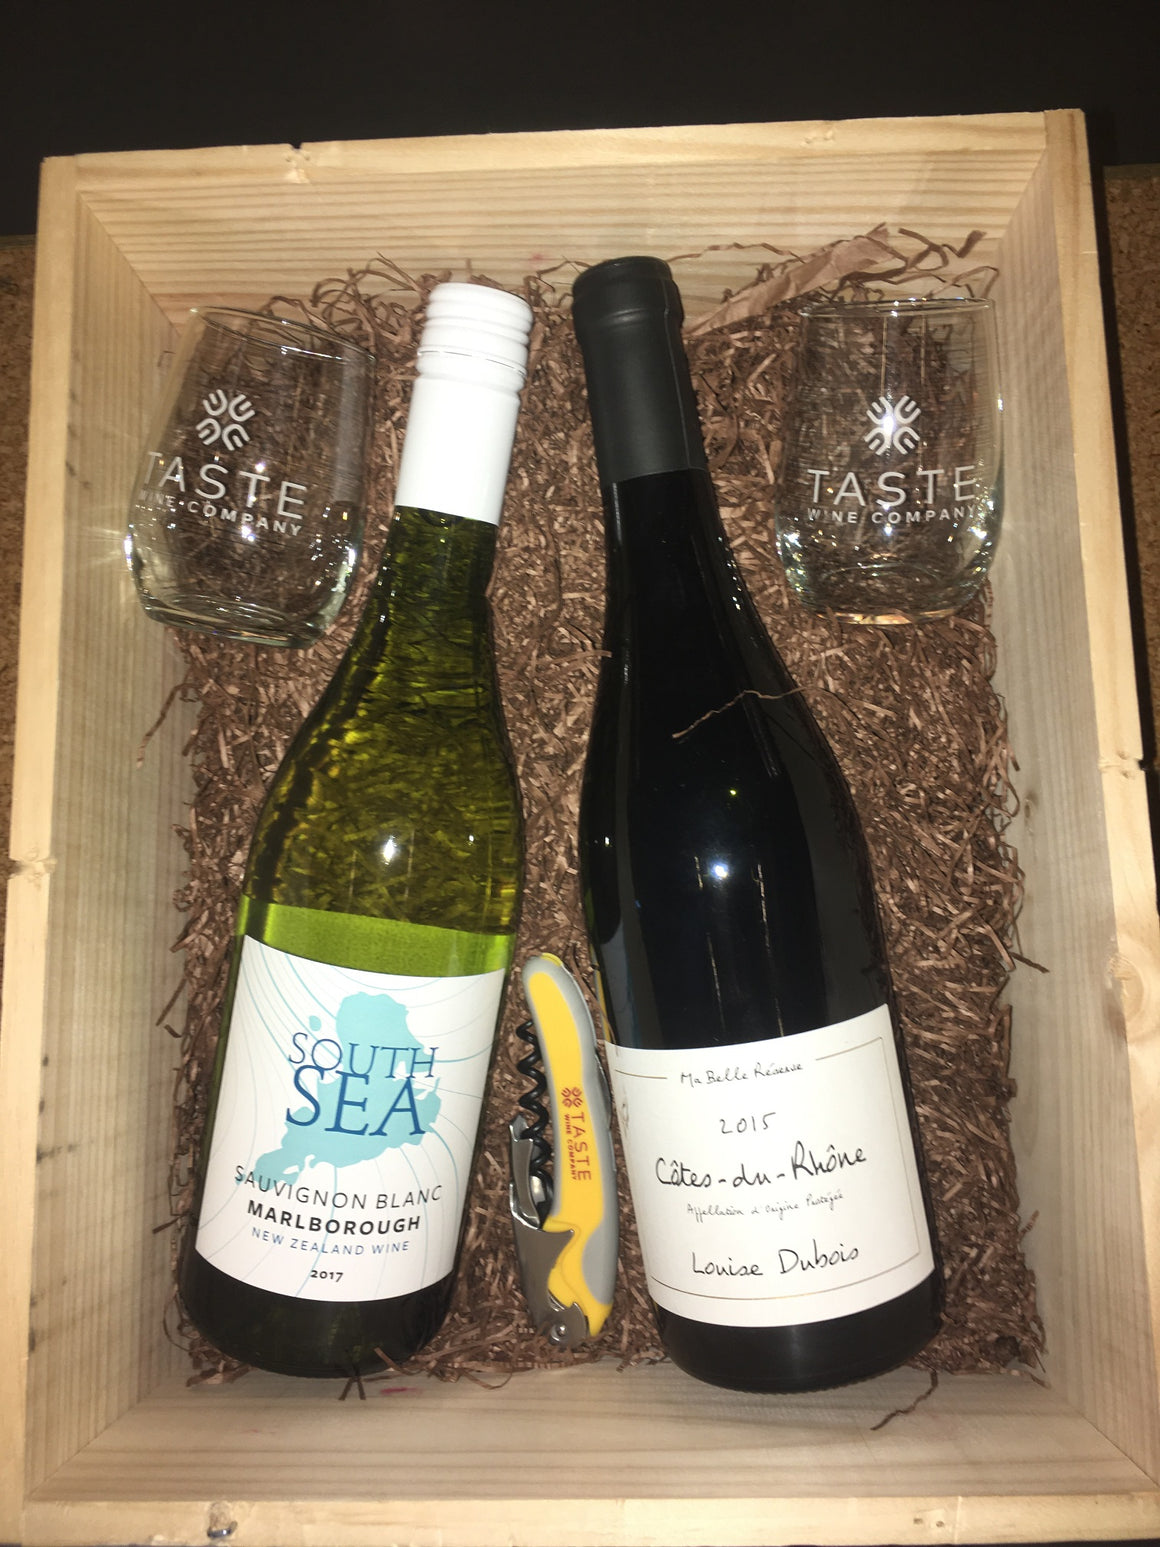 $33 gift box: South Sea Sauvignon Blanc & Louise Duboise Cotes du Rhone